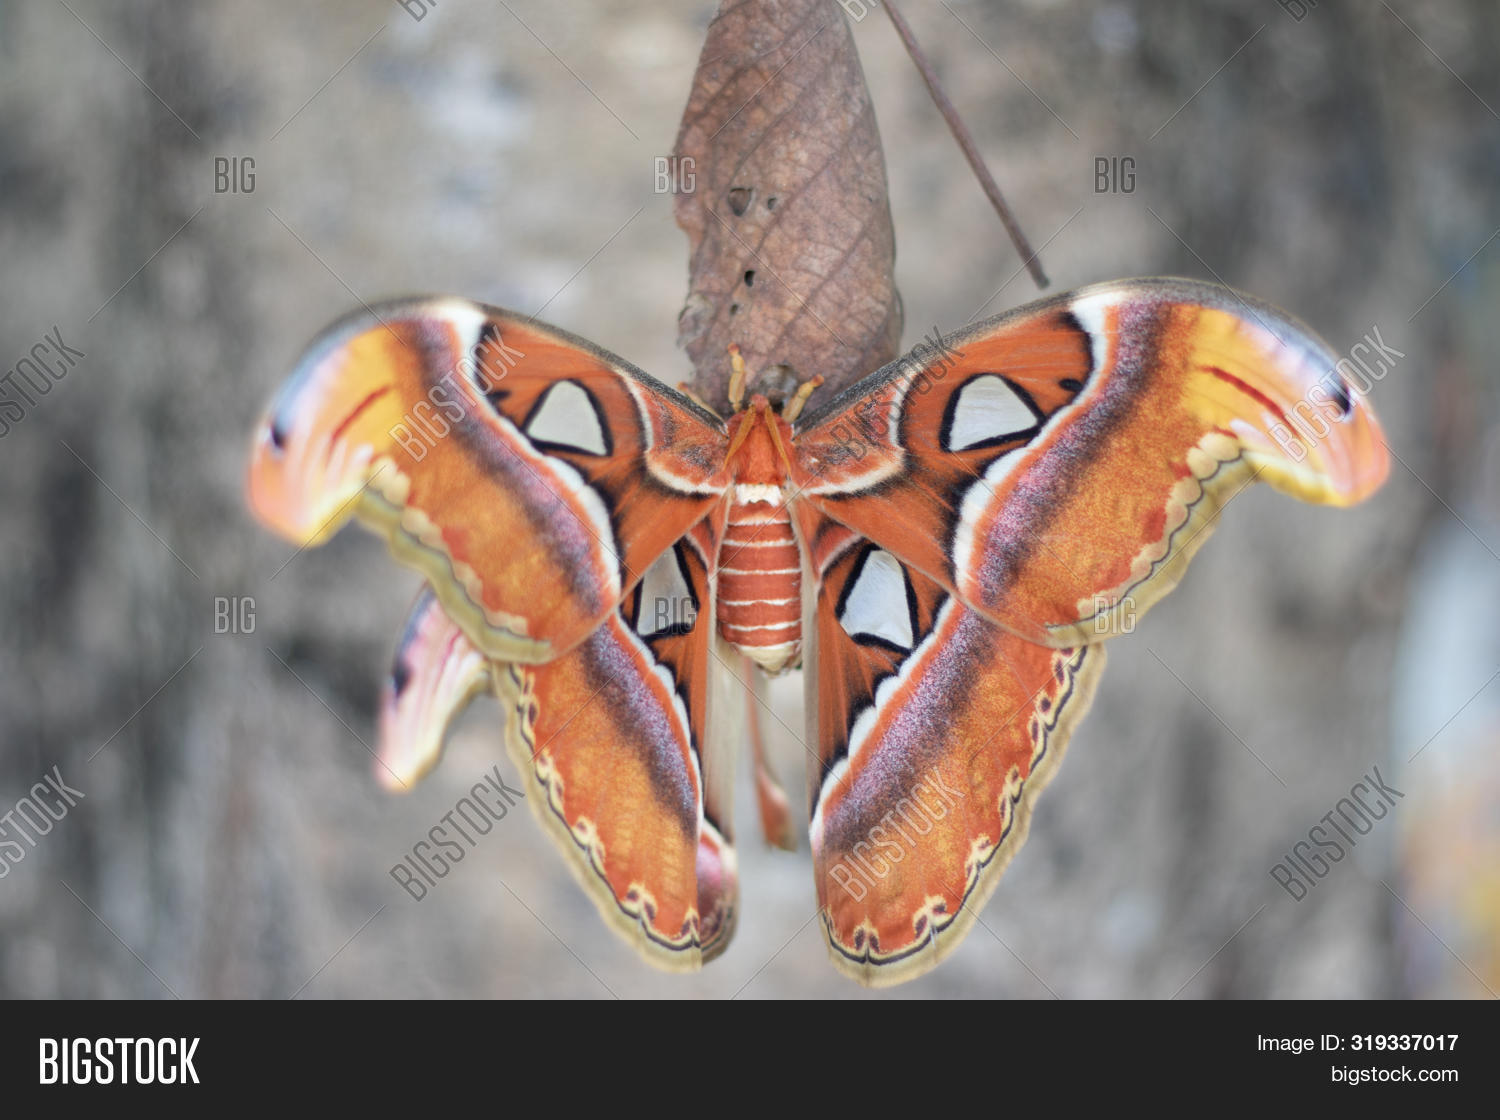 animal,antenna,asia,atlas,attacus,beautiful,beauty,big,biggest,bright,brown,bug,butterfly,clipping,closeup,cocoon,colorful,creature,dangle,delicate,delicated,design,entomology,environment,exotic,fragile,giant,green,habitat,hang,insect,large,lepidoptera,macro,moth,natural,nature,nocturnal,paciousmoth,paper,pattern,pulp,pupa,resting,silk,summer,tropical,wild,wildlife,wing